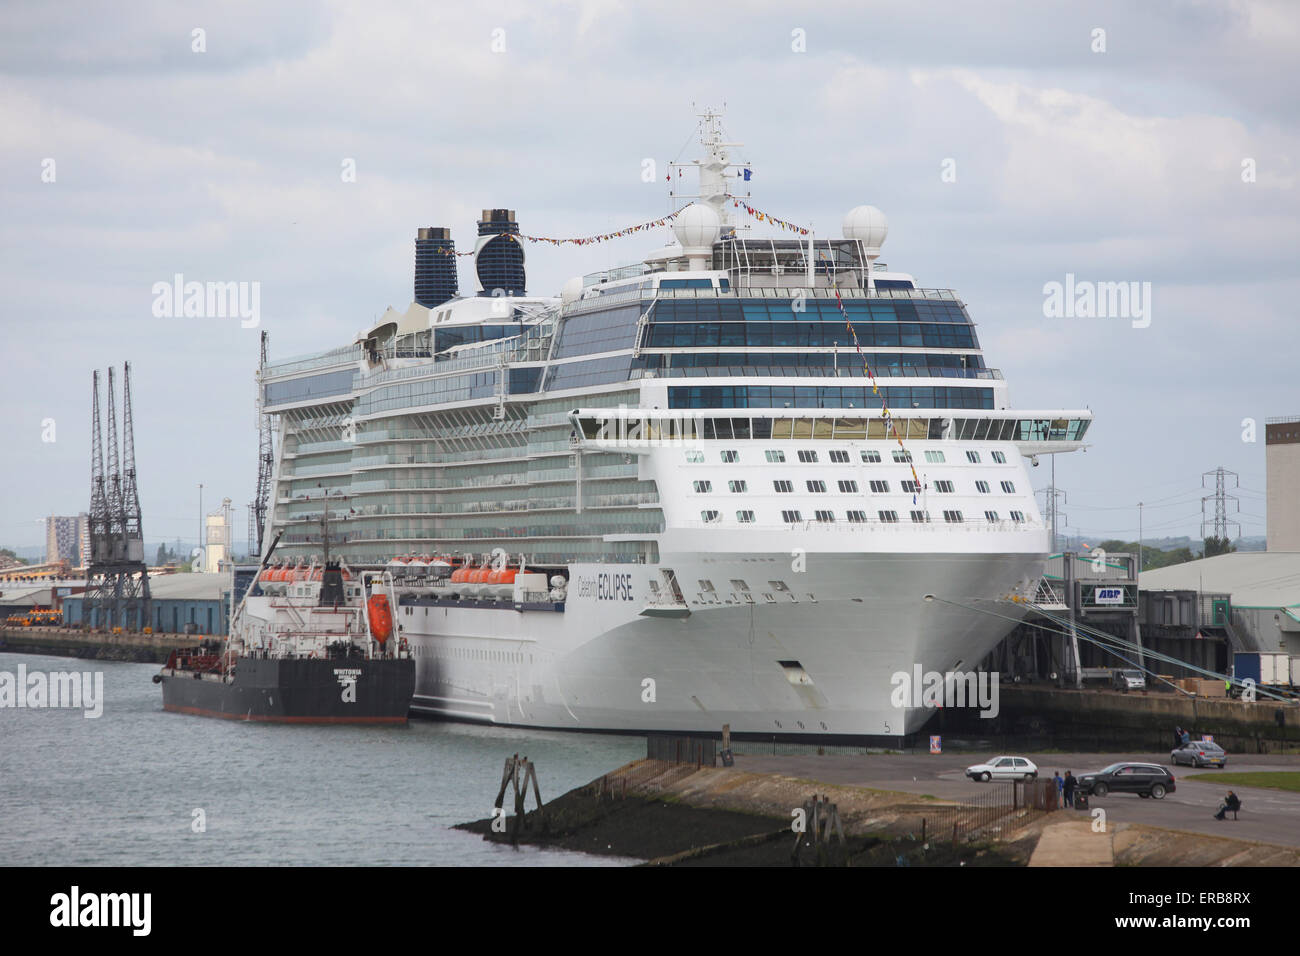 Celebrity Eclipse cruise ship pictured in Southampton Docks - Stock Image